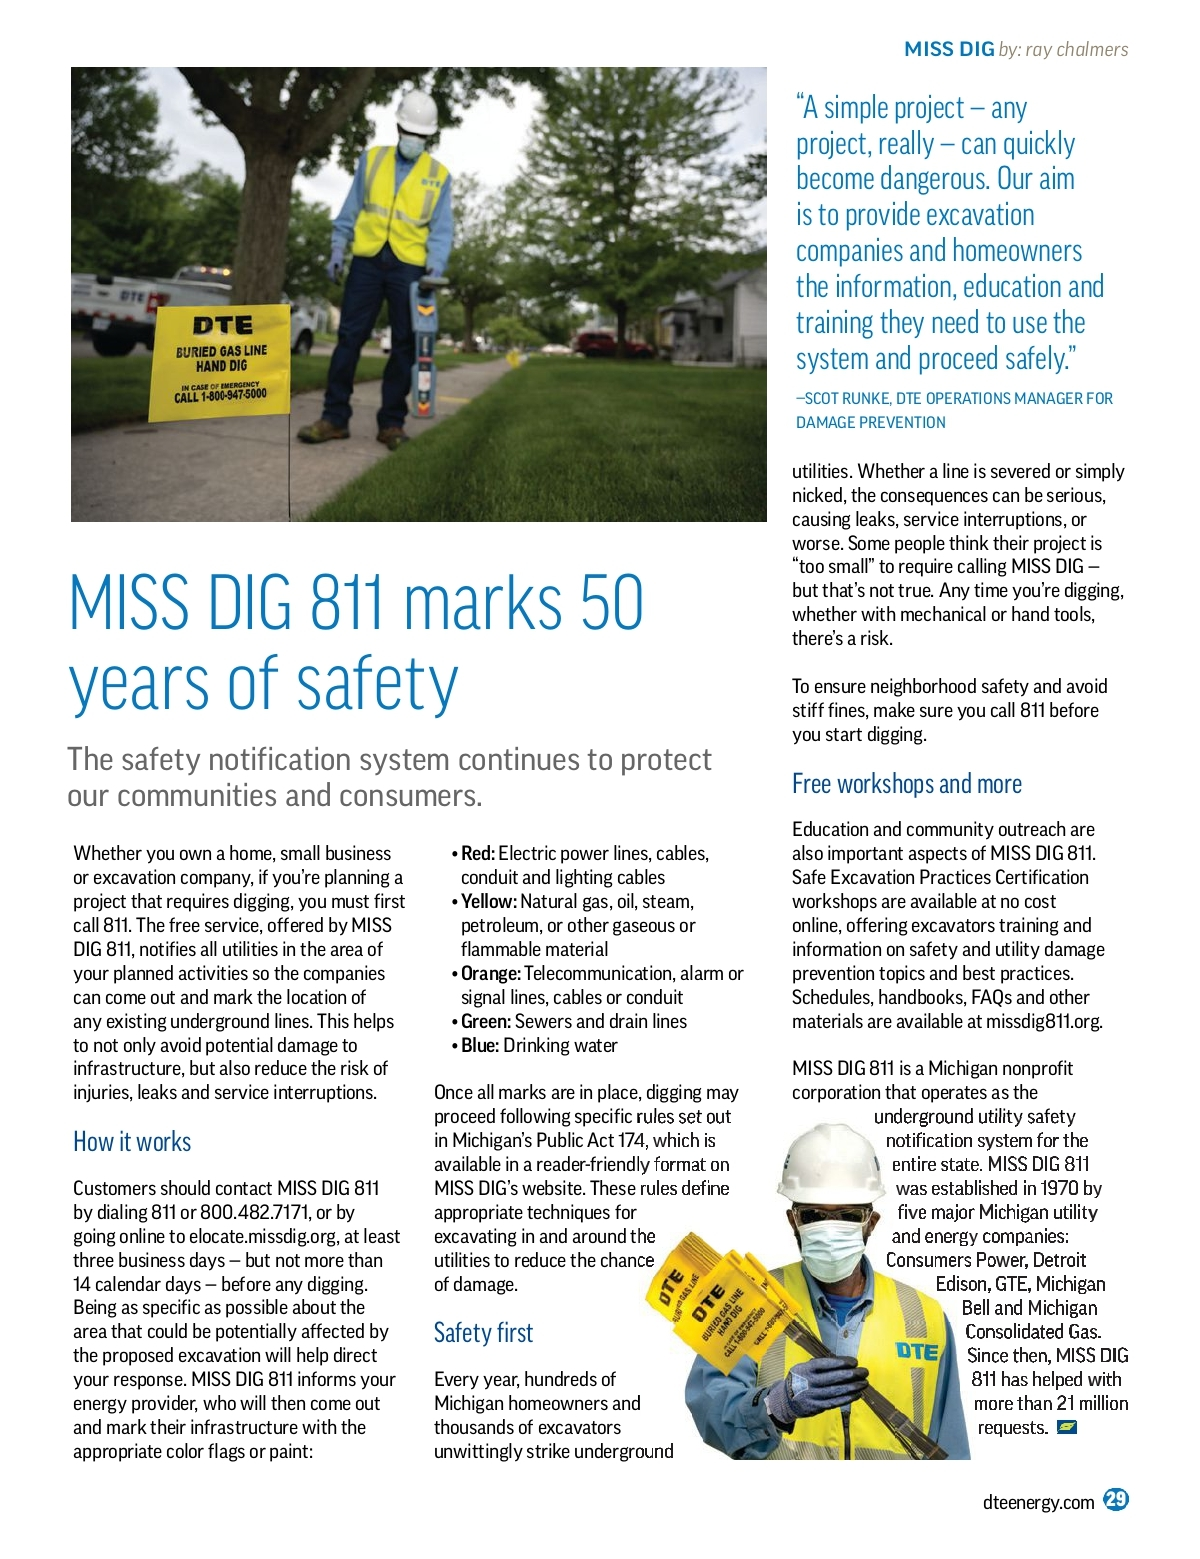 Dte Energy Smarts Summer 2020 Is michigan's utility safety notification system. mydigitalpublication com